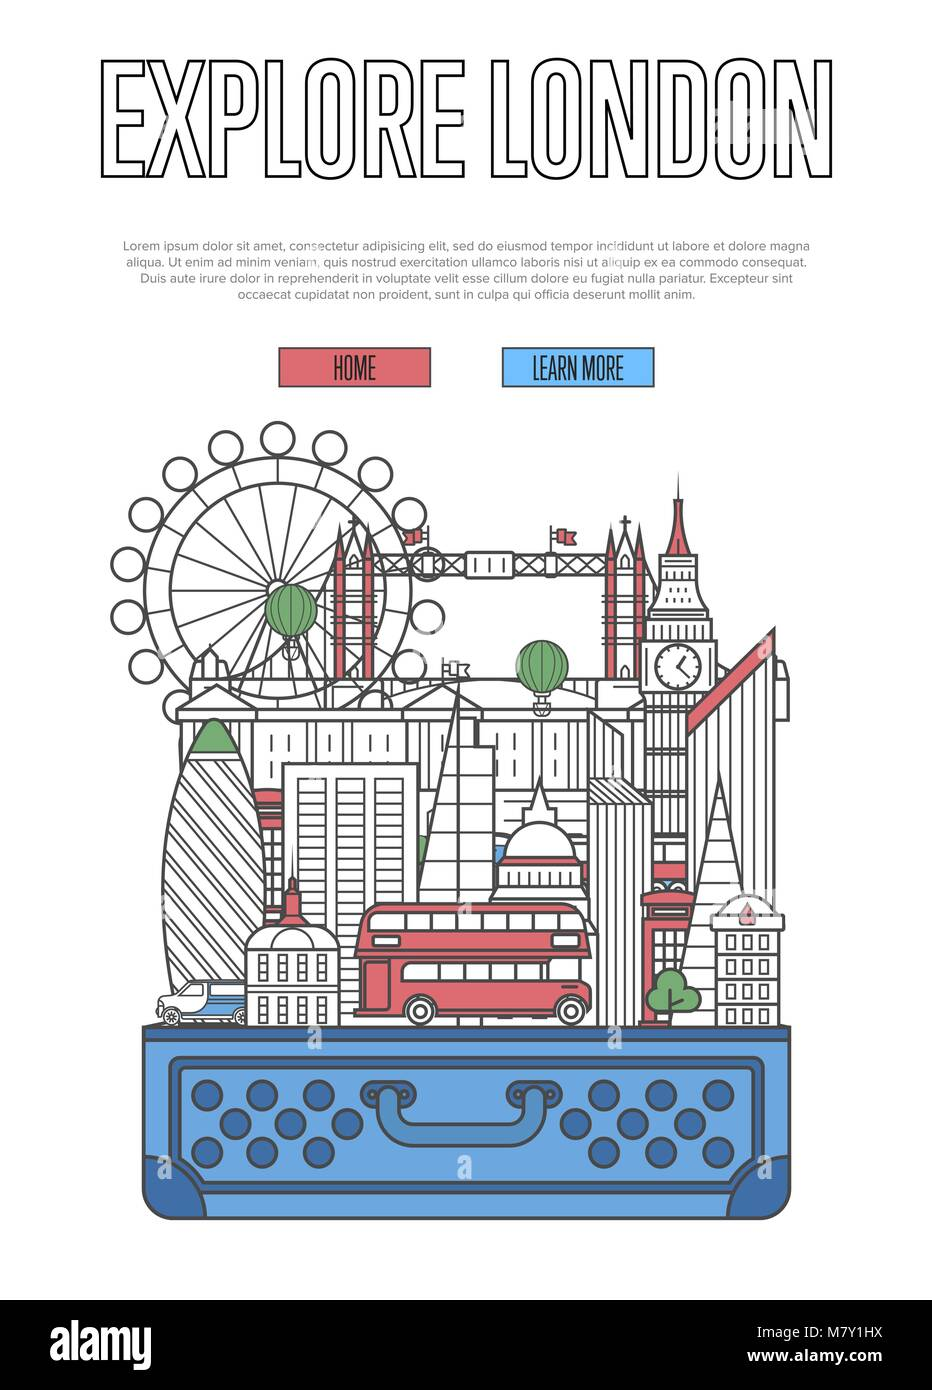 Explore London poster with open suitcase - Stock Image